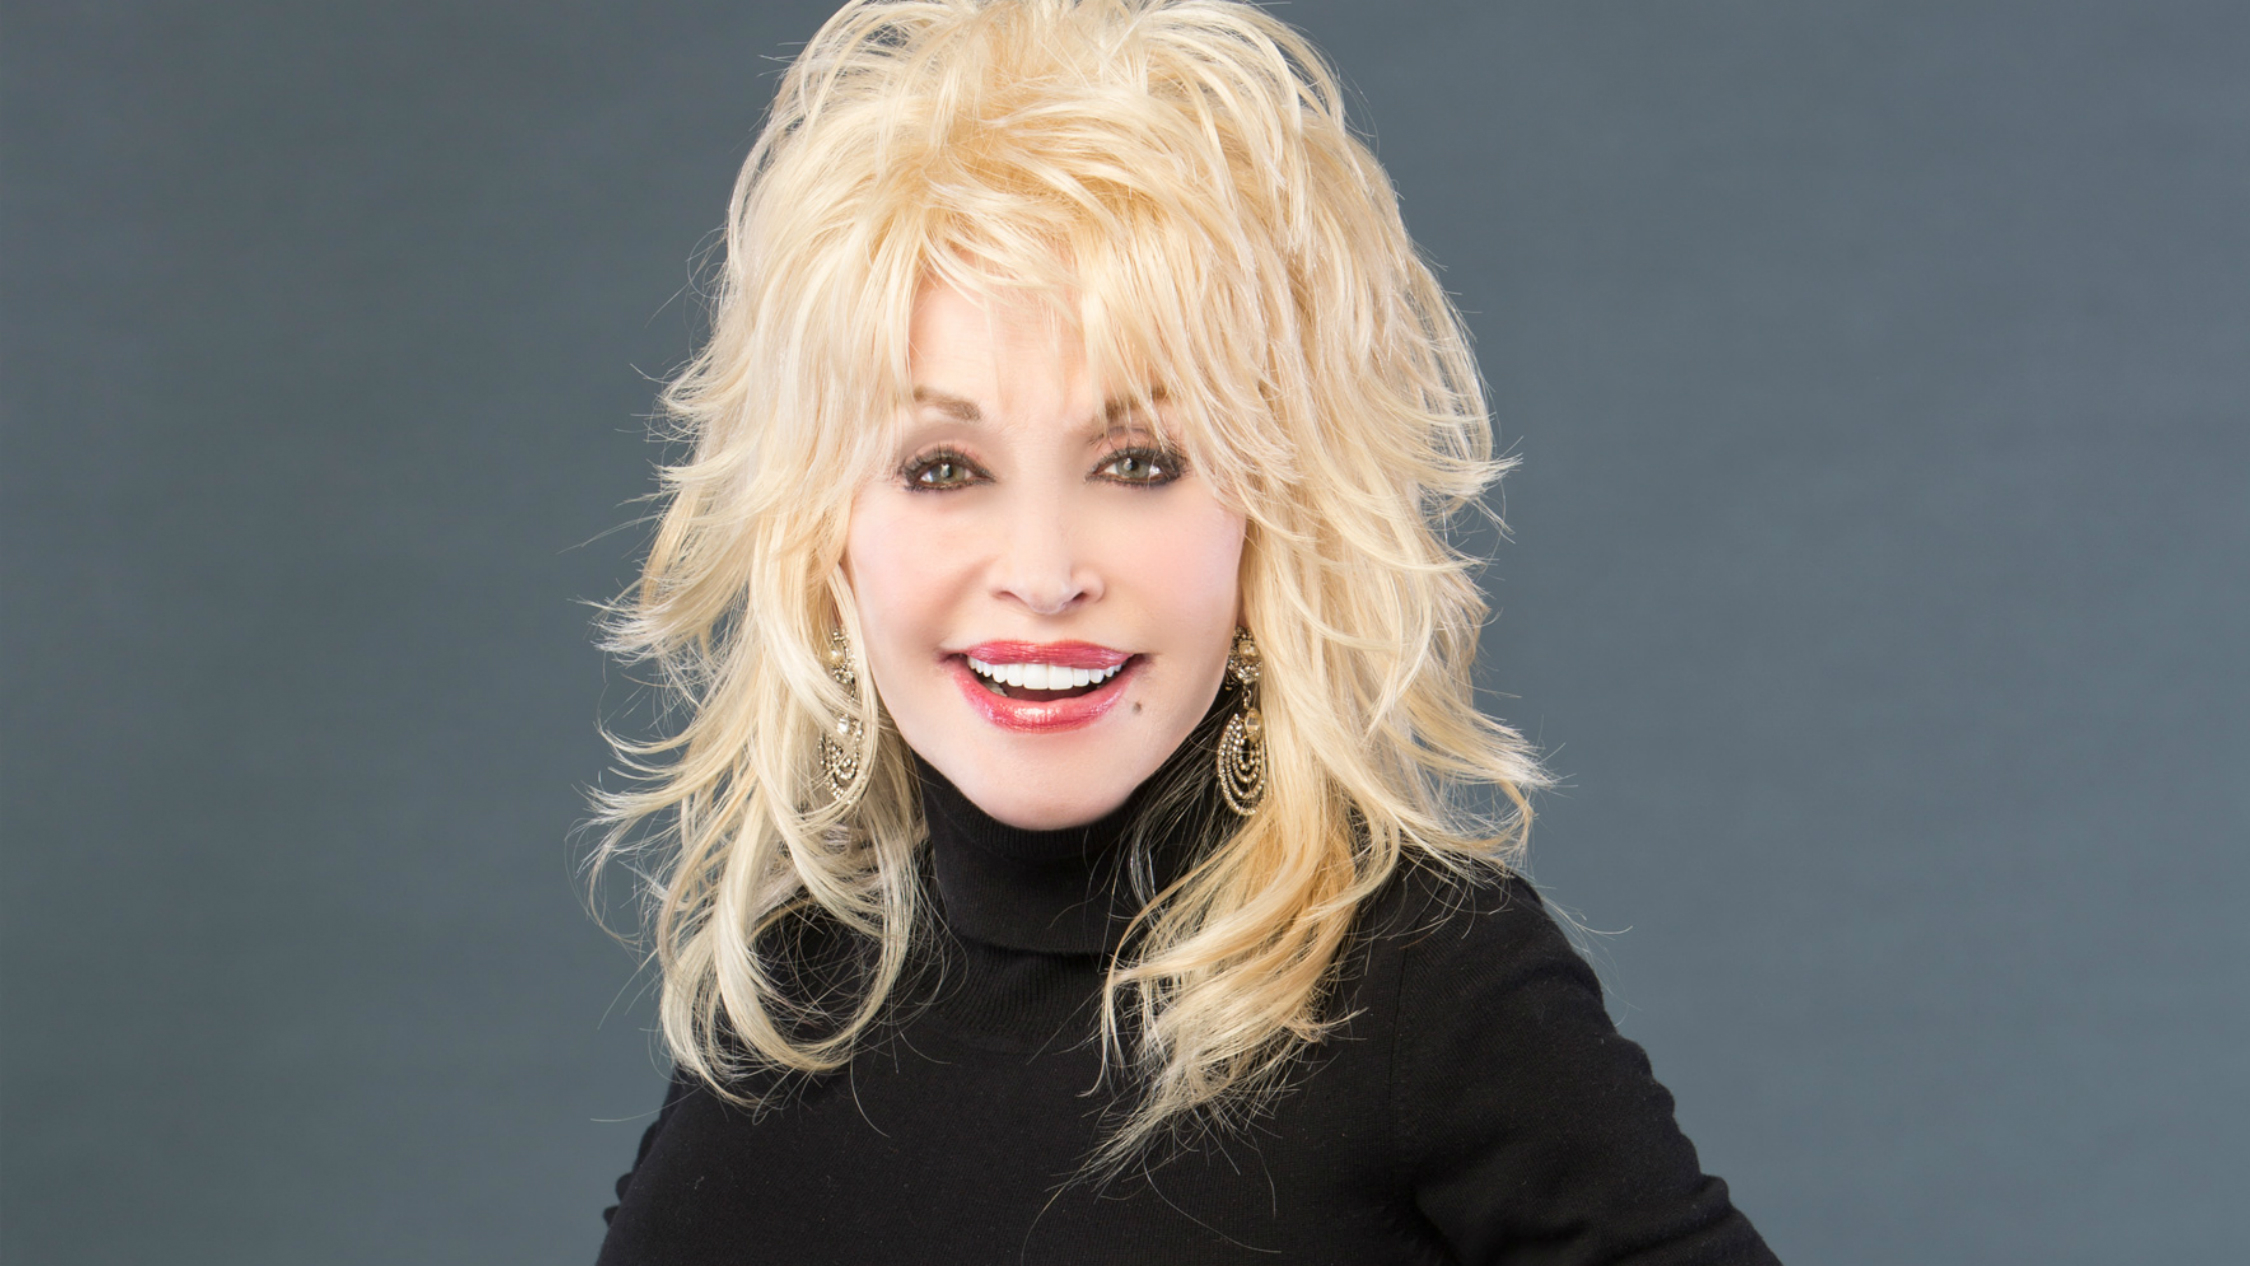 Dolly Parton 9 to 5 musical 2020 supplied